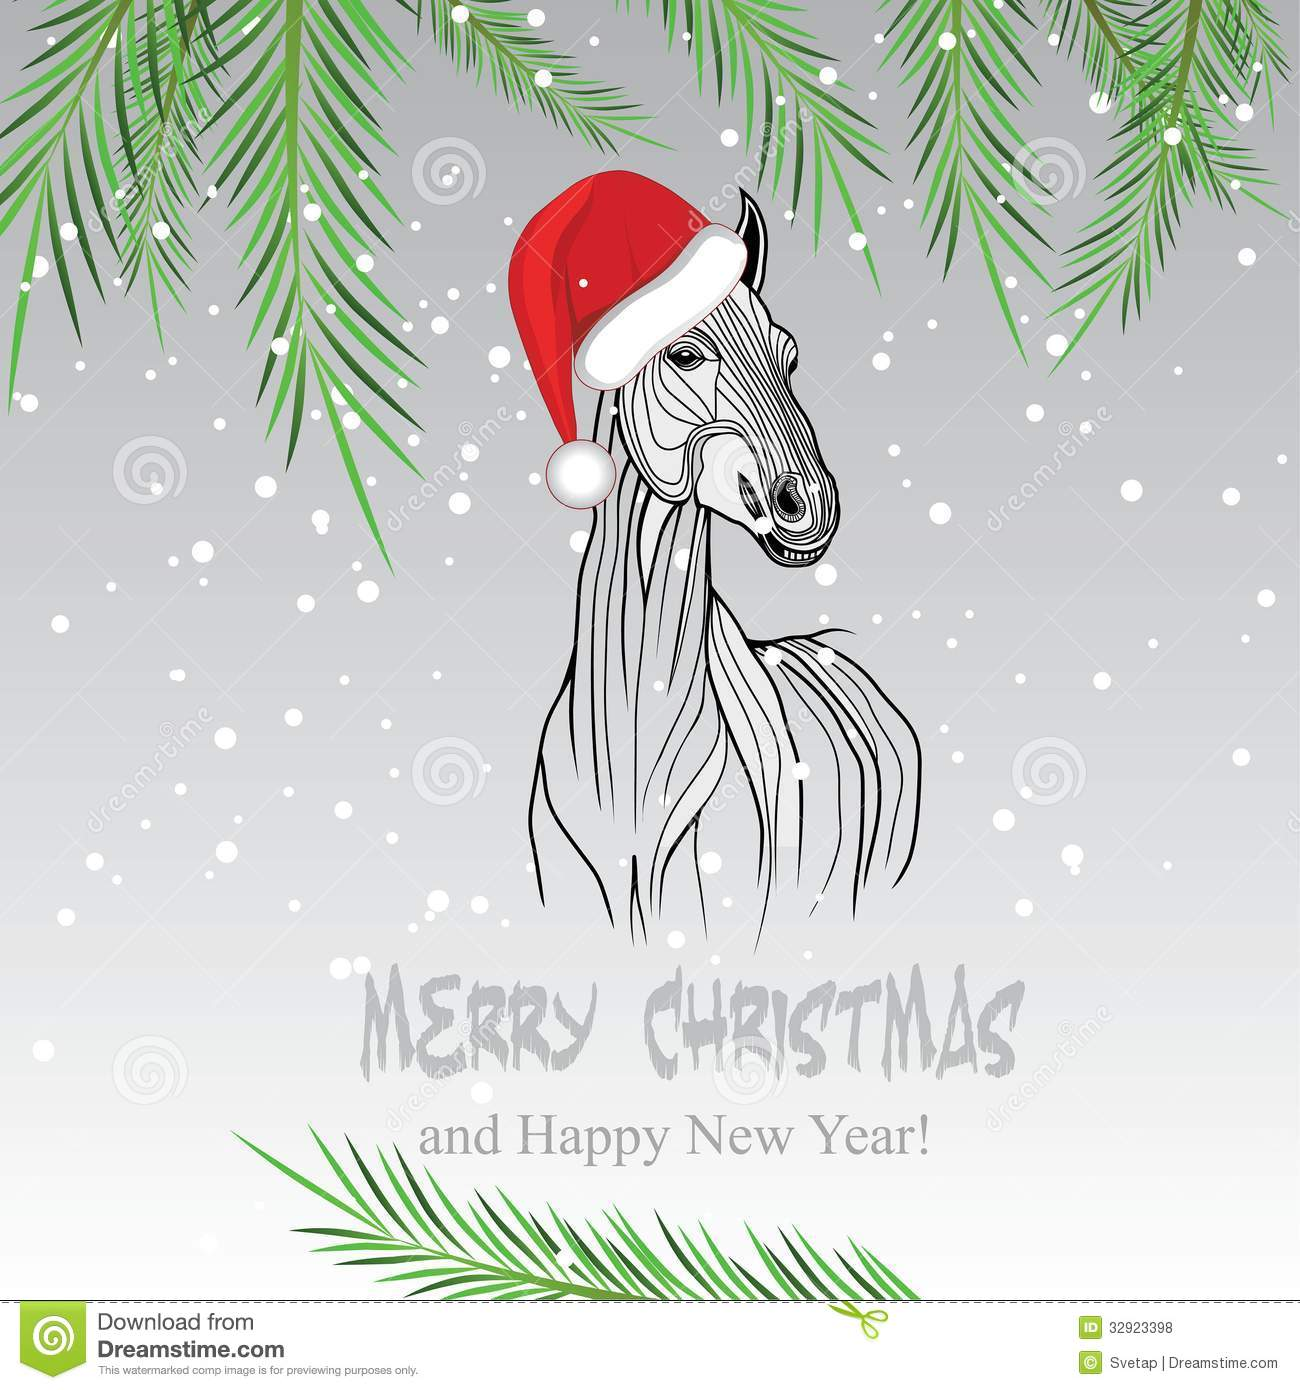 Horse Merry Christmas Card 2014 Year Chinese Symbol Vector Illustration Image Tattoo Design